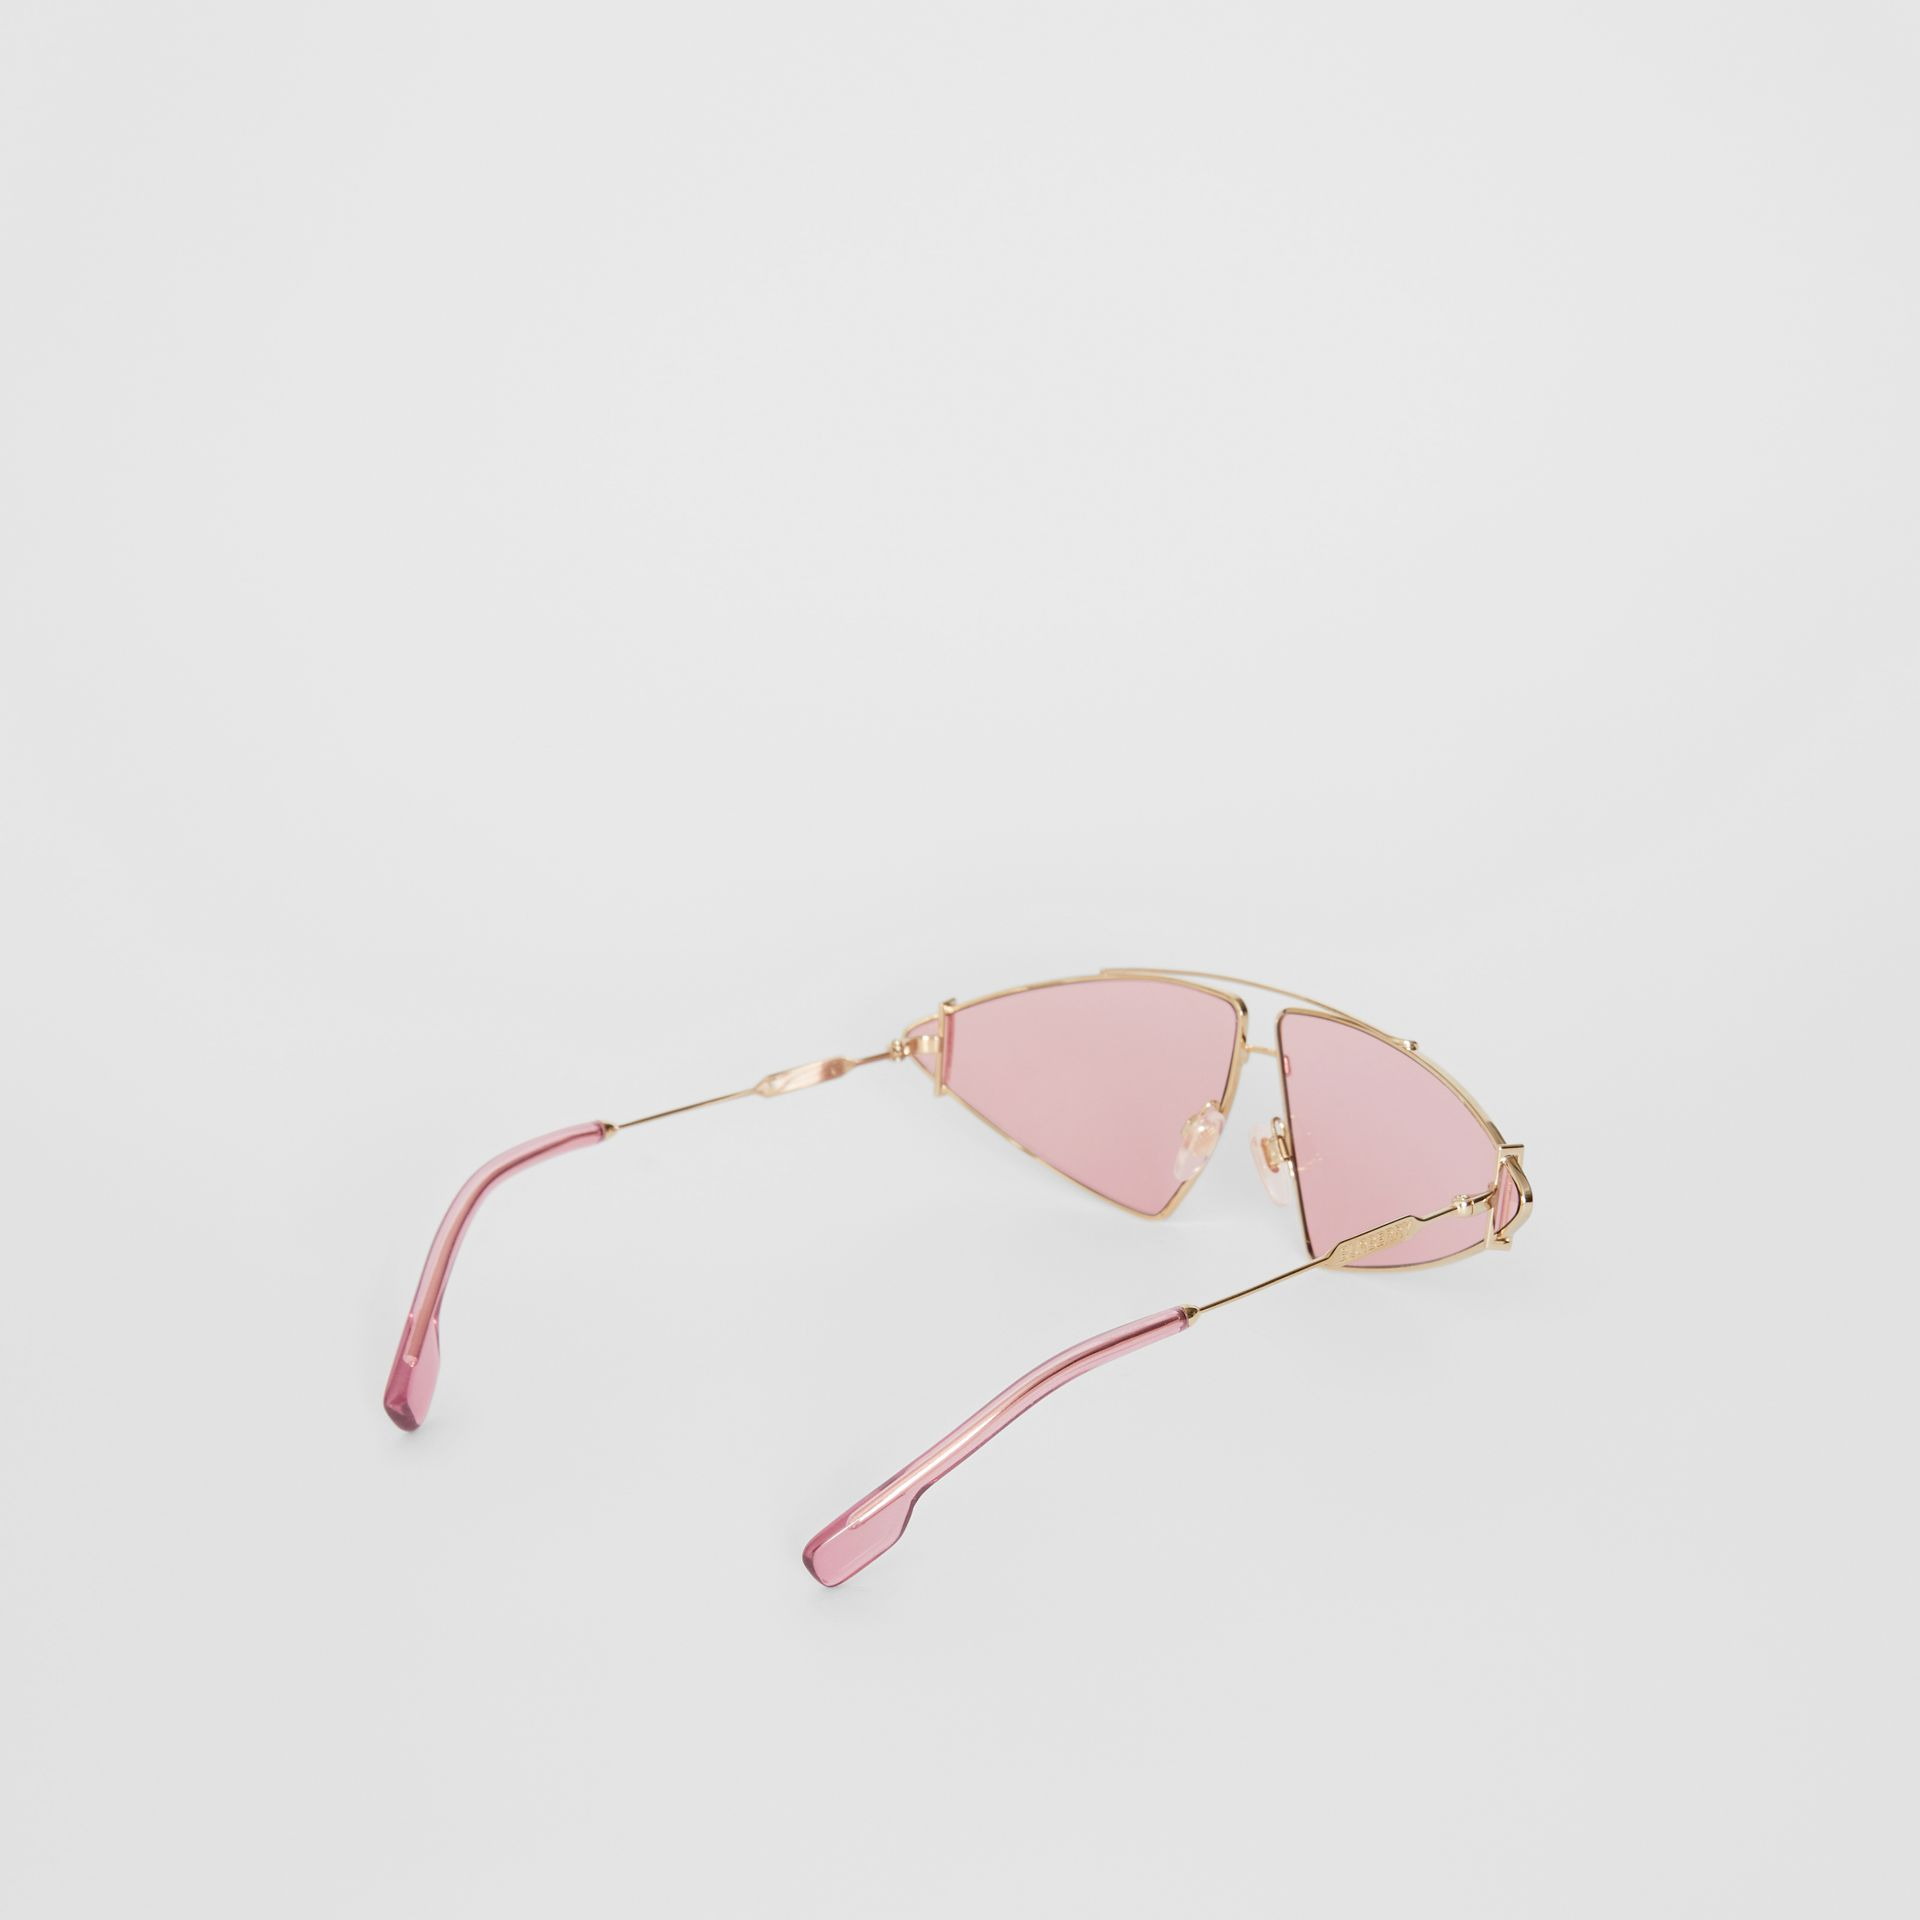 Gold-plated Triangular Frame Sunglasses in Blush Pink - Women | Burberry - gallery image 4